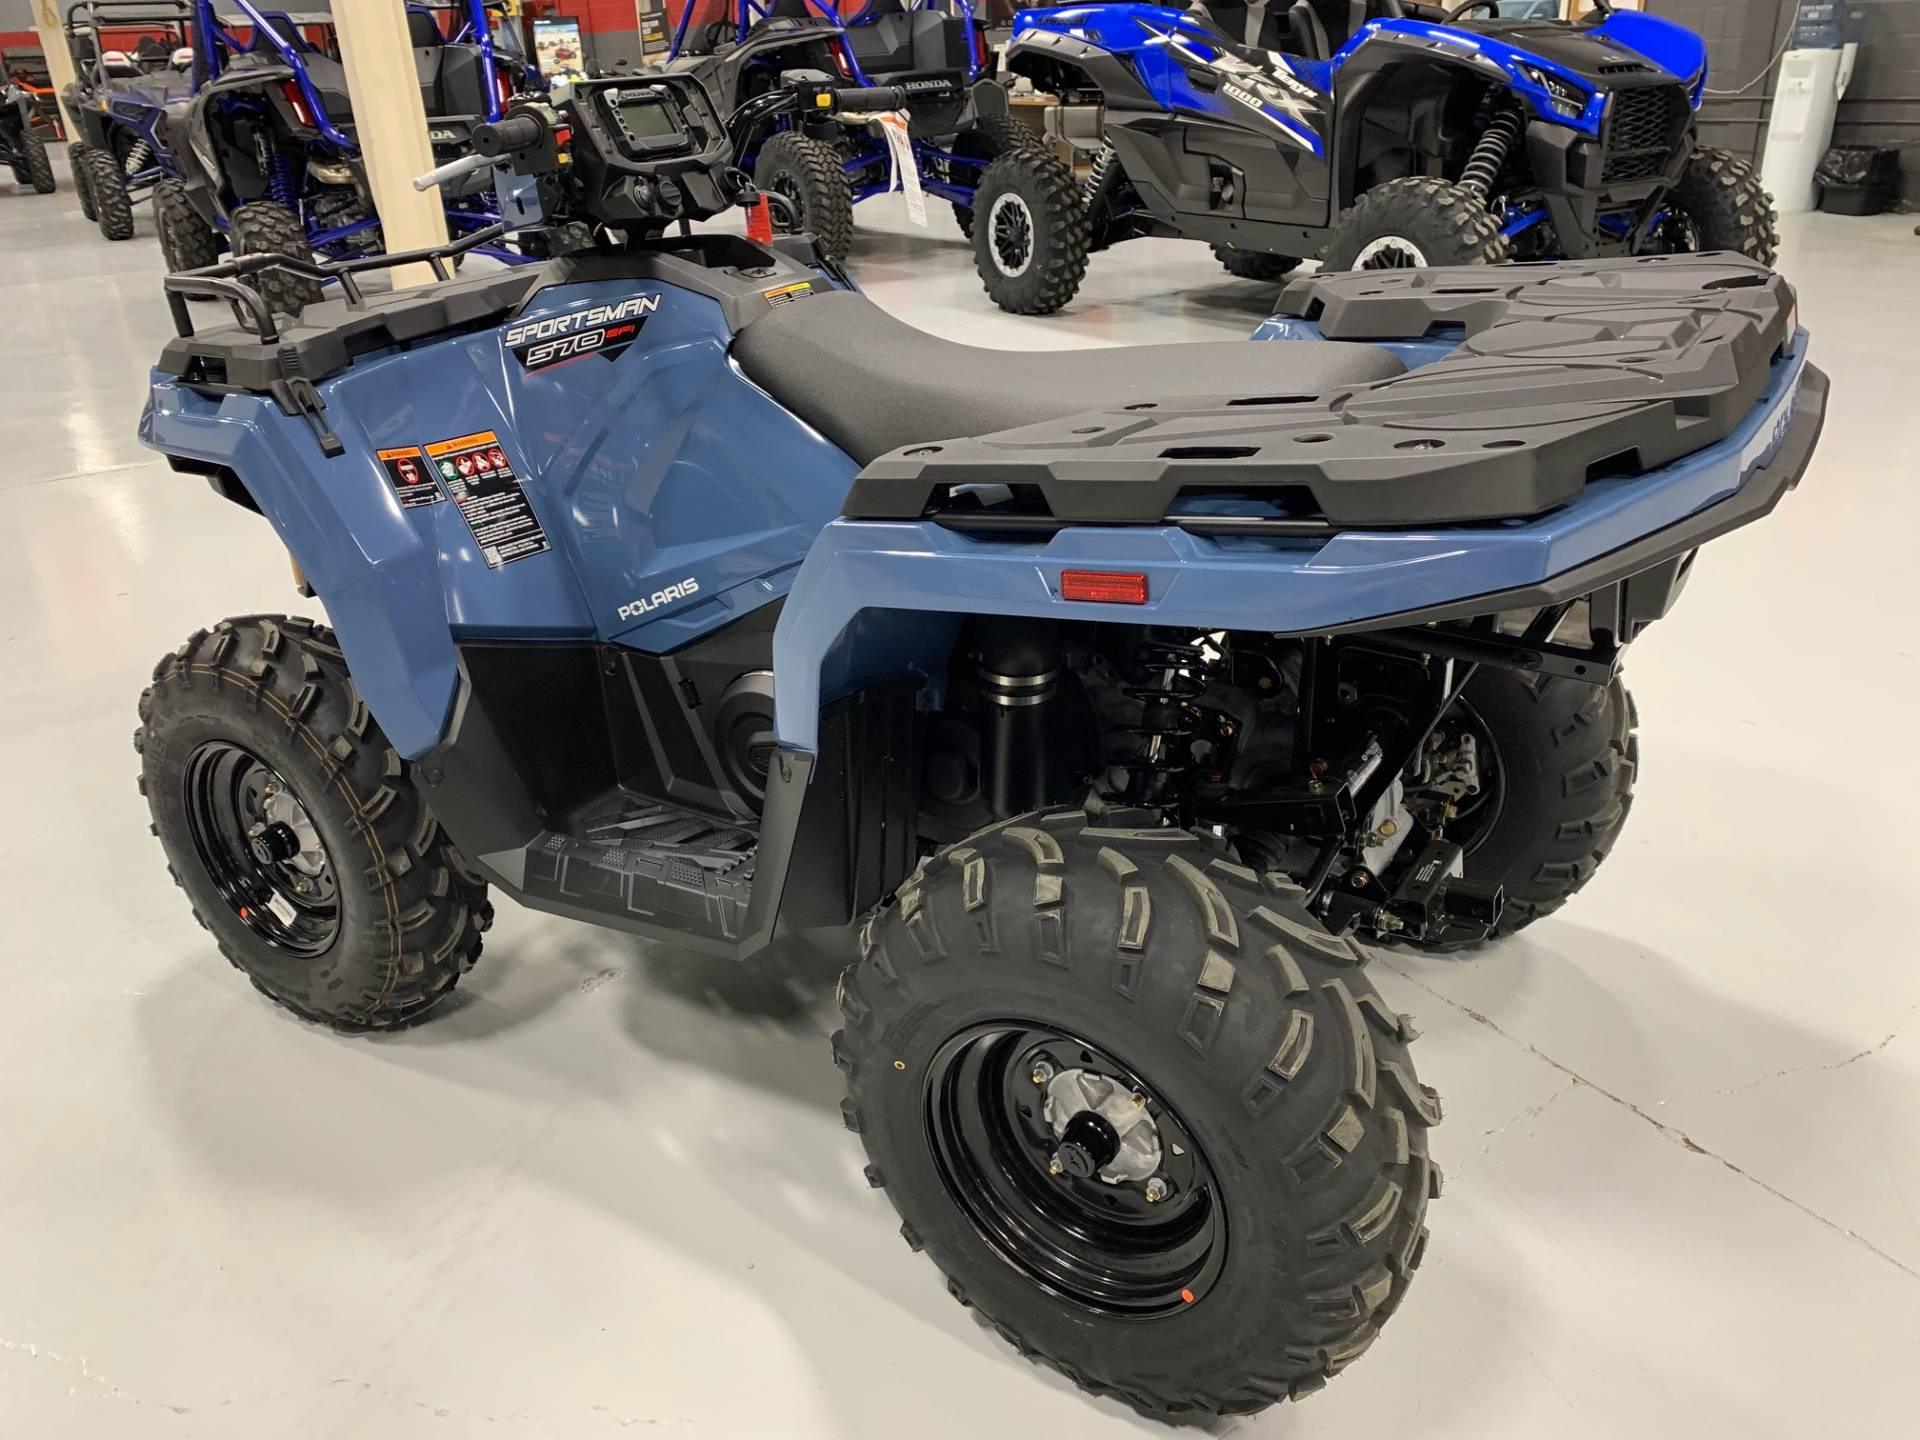 2021 Polaris Sportsman 570 in Brilliant, Ohio - Photo 5